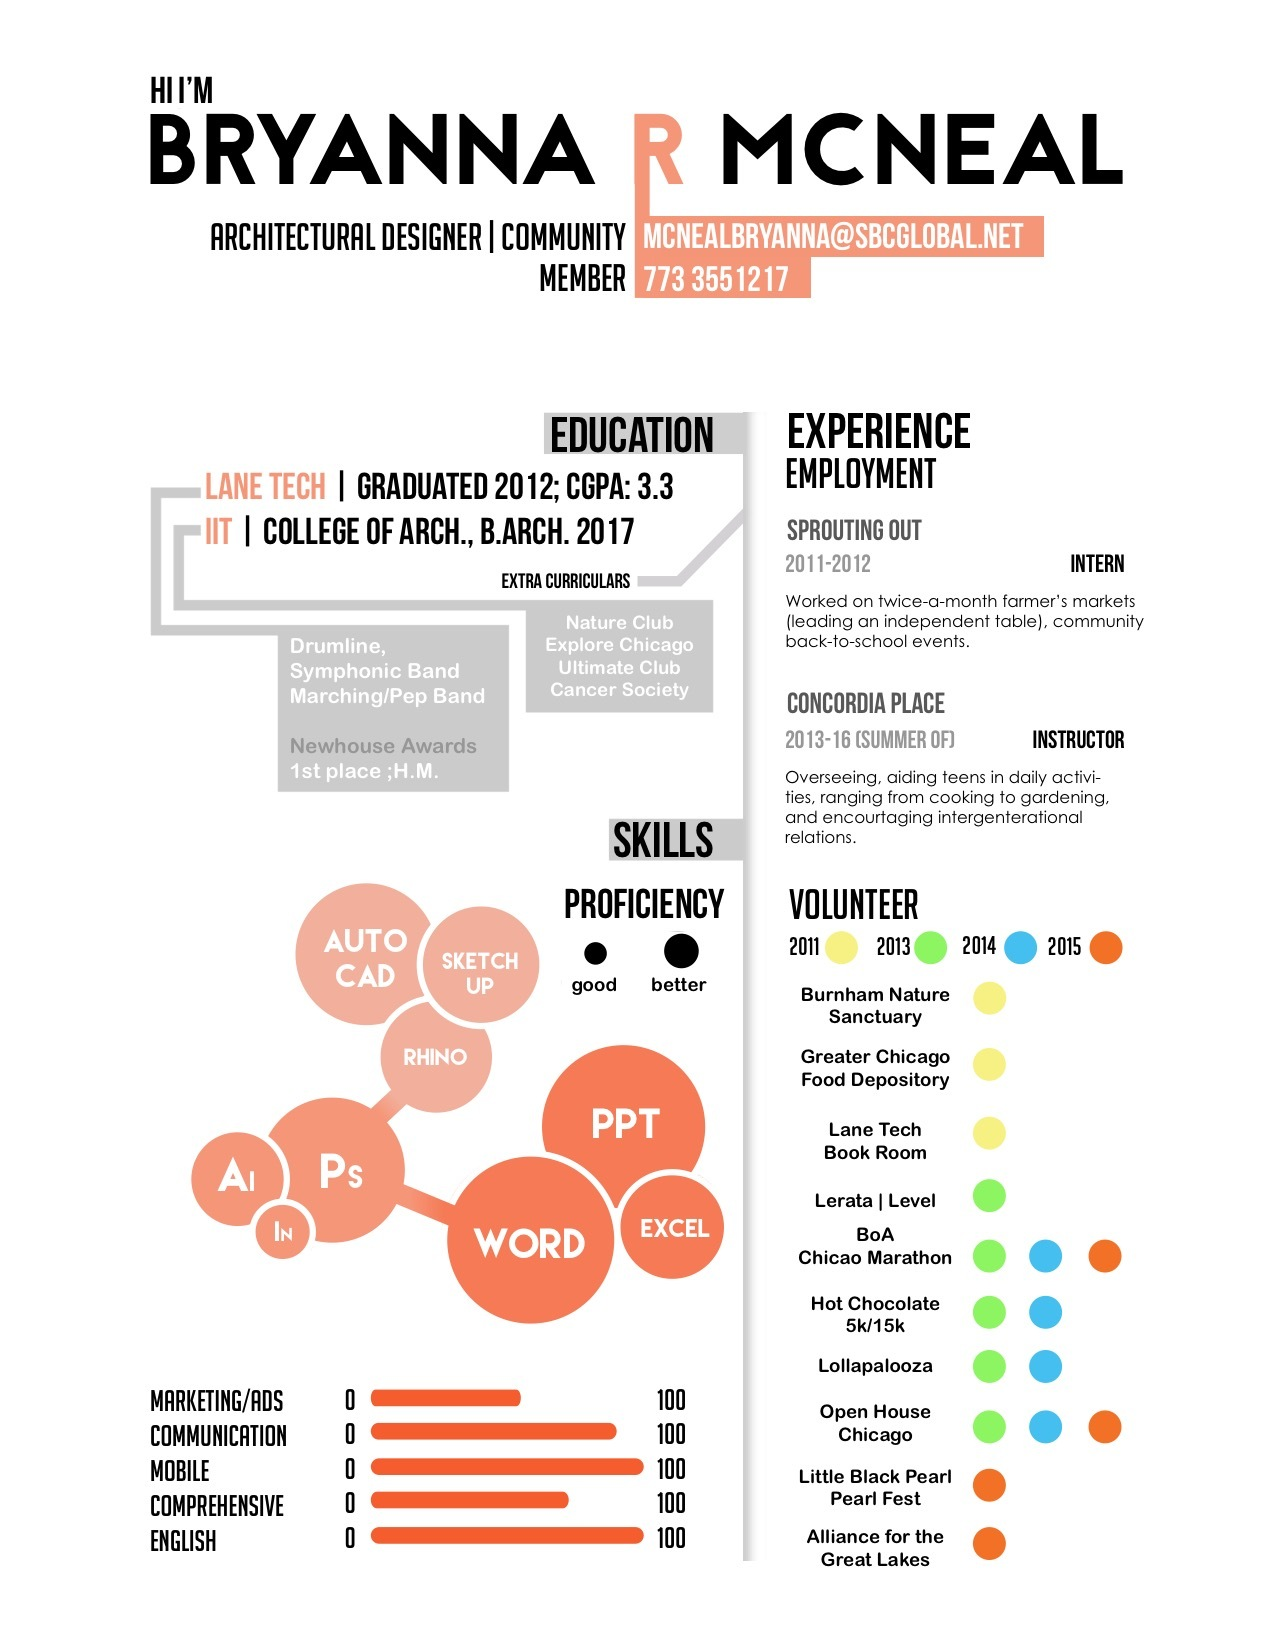 Pretty 1.25 Button Template Small 10 Words To Put On Your Resume Regular 100 Square Pool Template 11x17 Graph Paper Template Young 15 Year Old First Resume Orange15 Year Old Resume Template CV Designs | ArchDaily